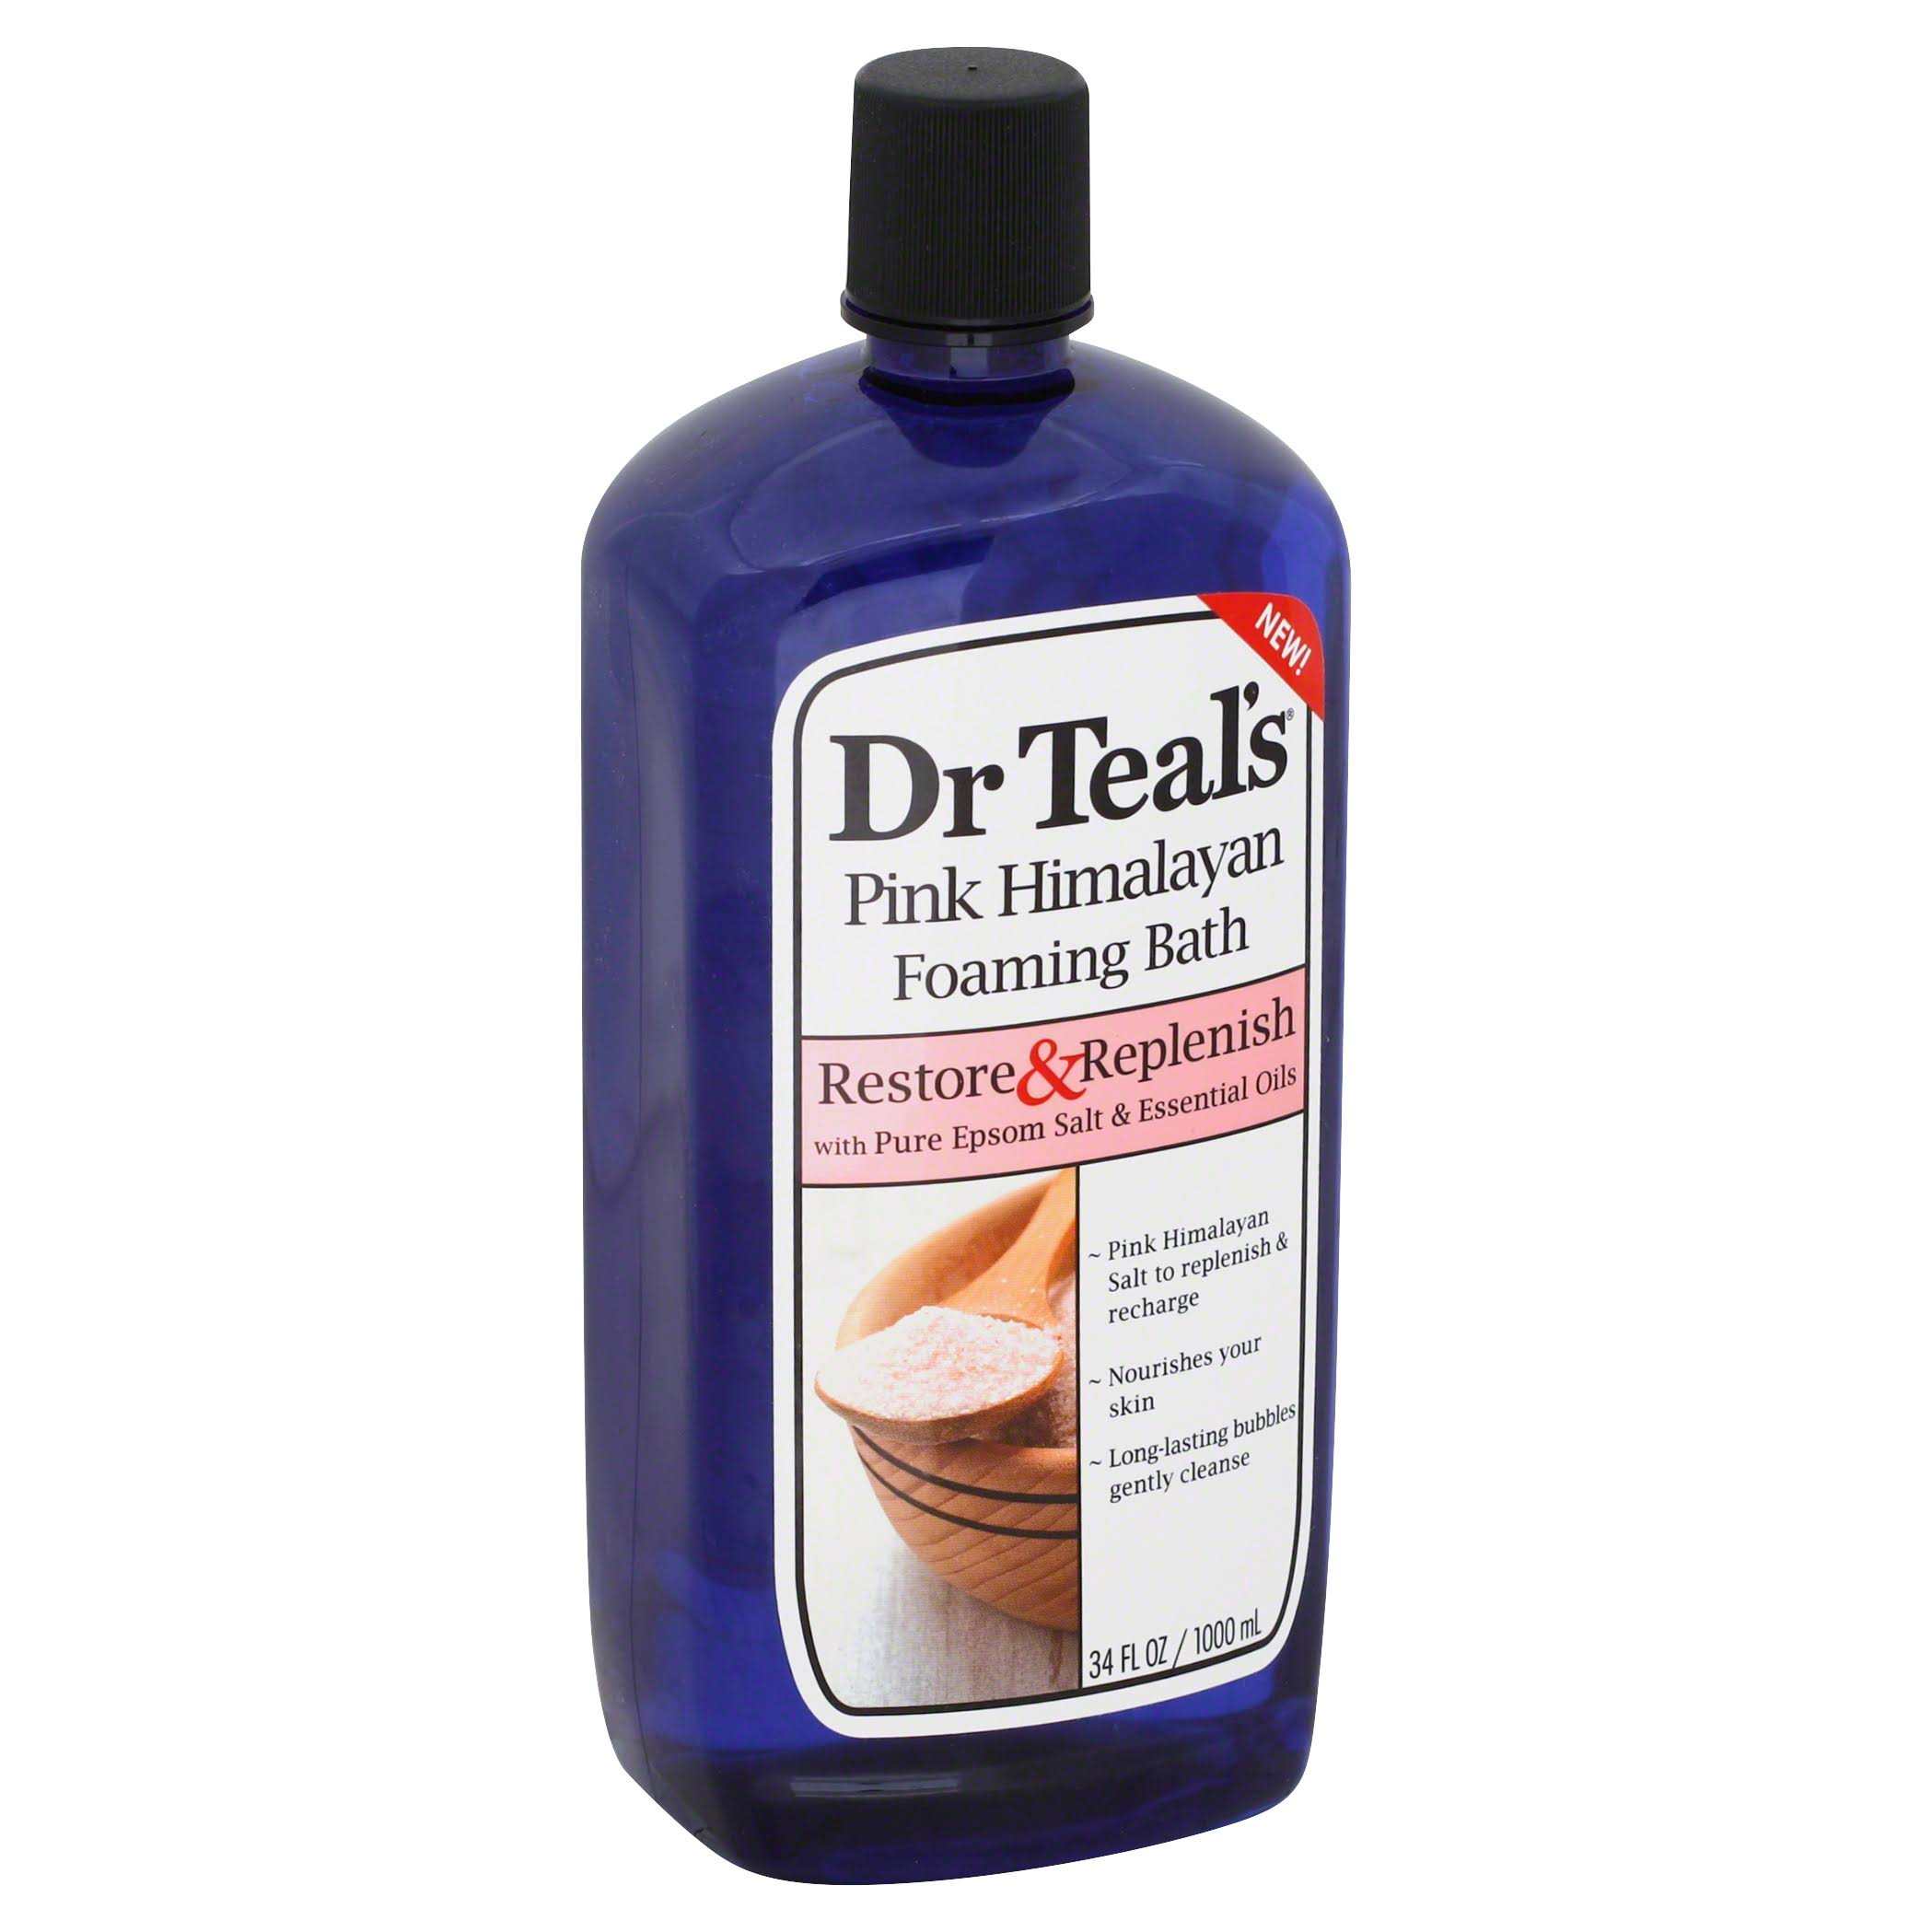 Dr Teal's Restore and Replenish Pink Himalayan Foaming Bath - 34oz